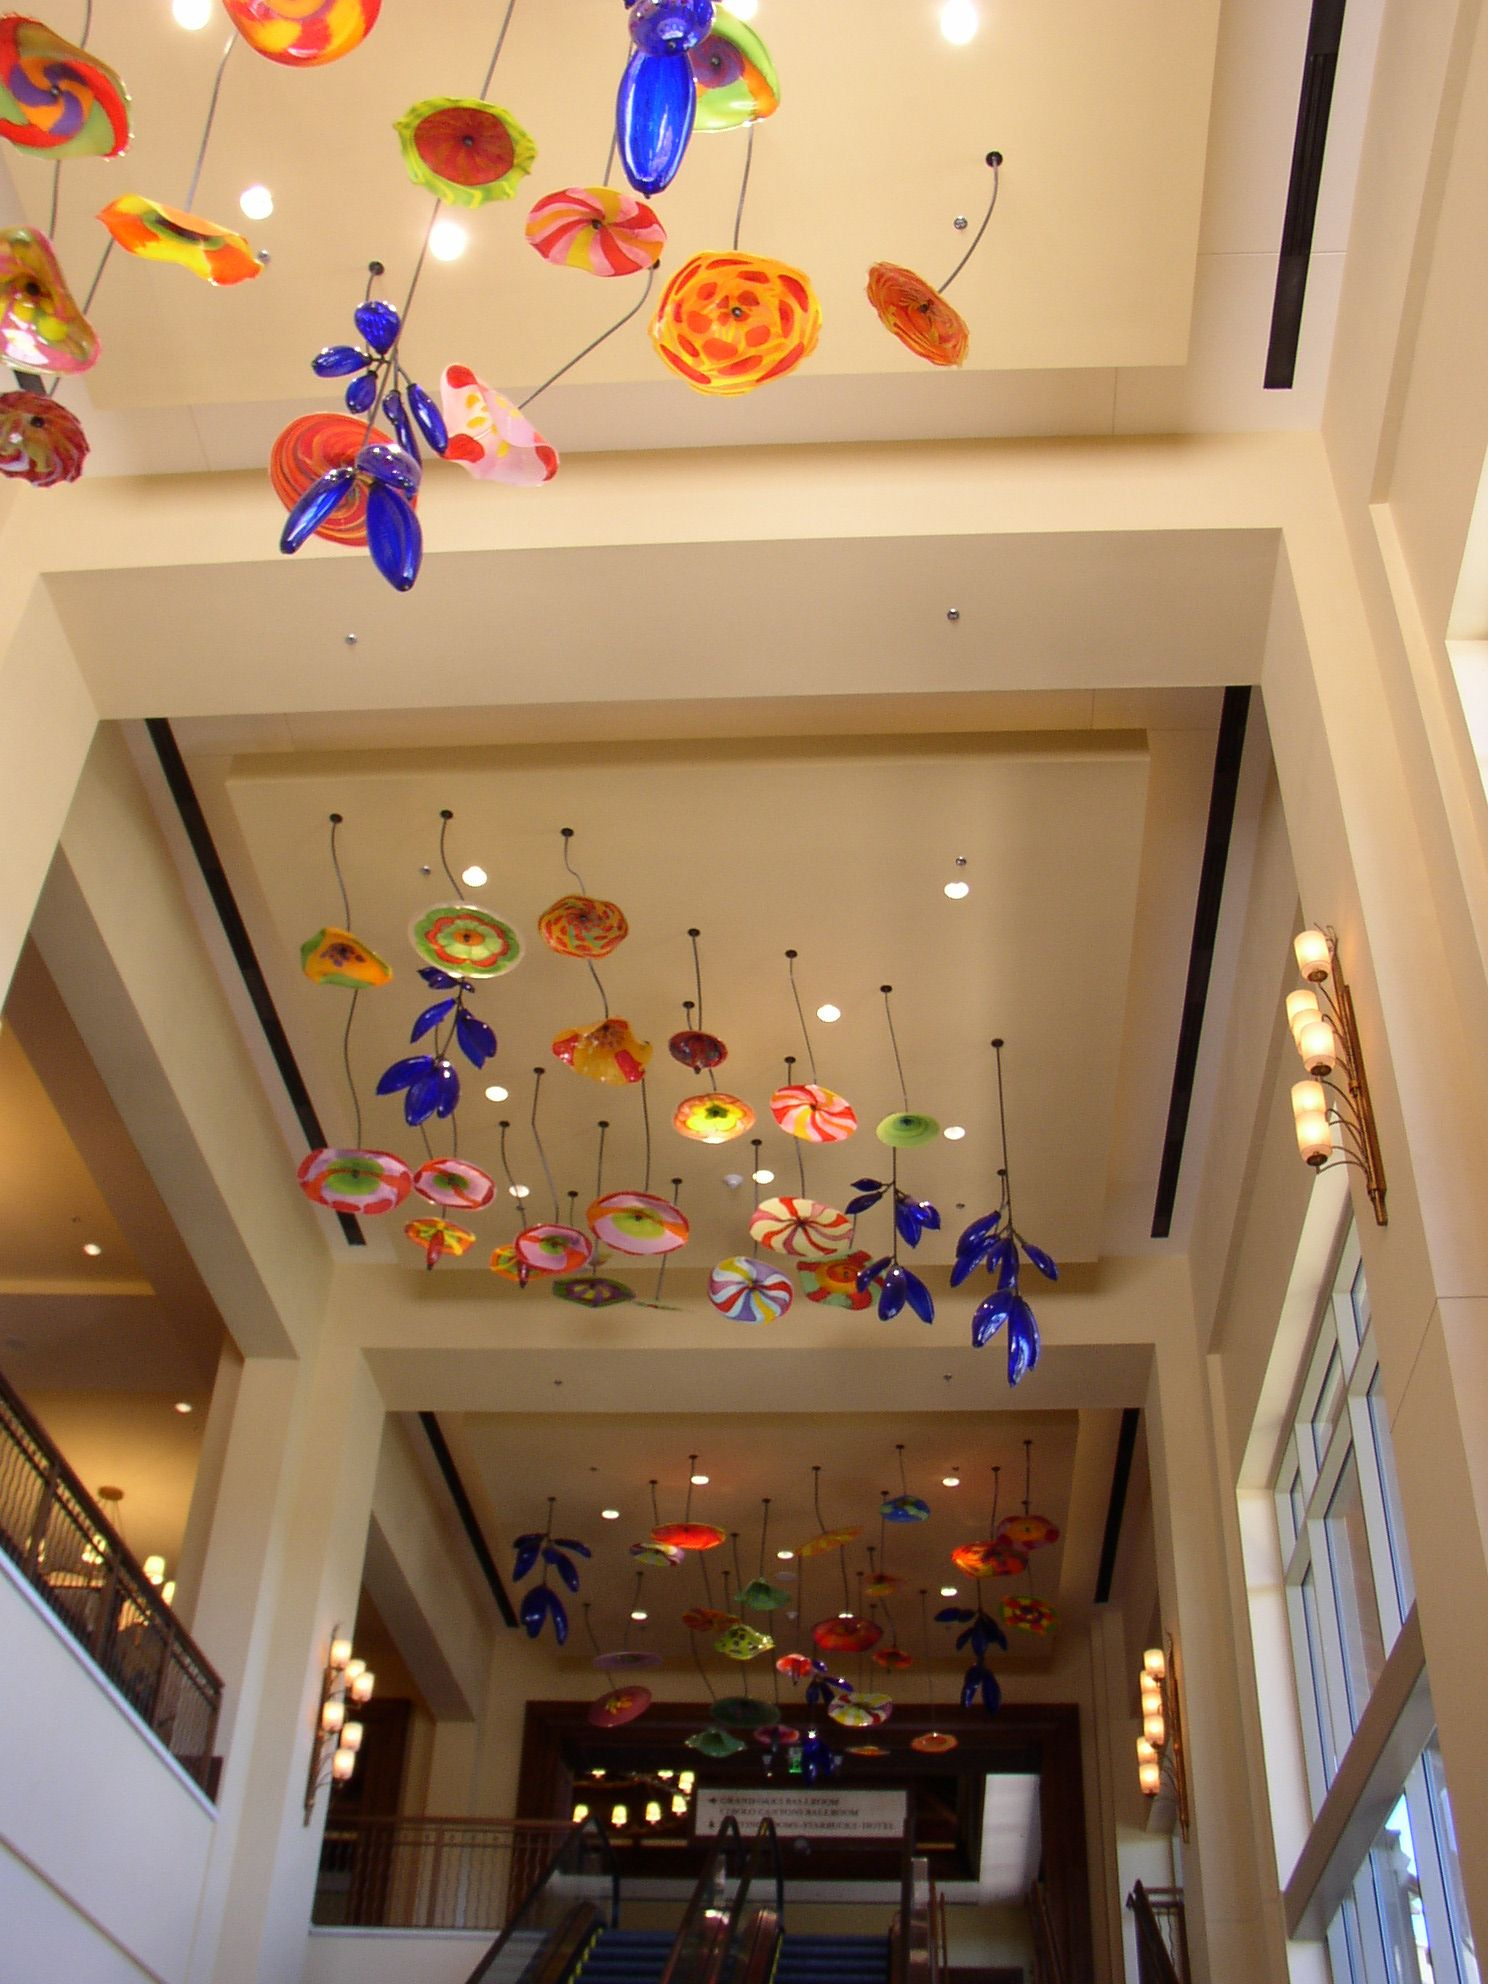 Dale Chihuly ceiling glass art in hotel conference center